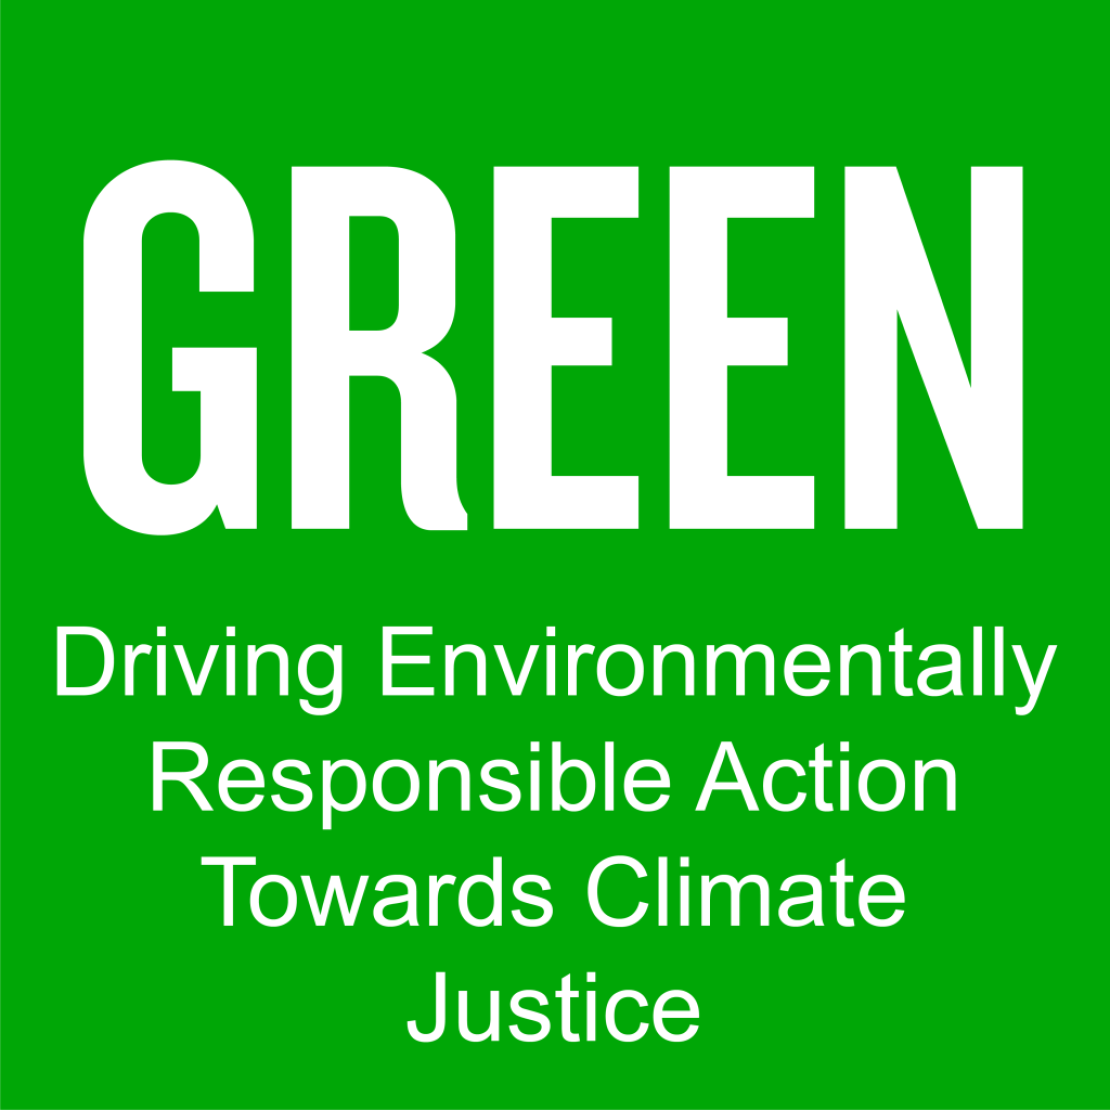 Driving Environmentally Responsible Action Towards Climate Justice